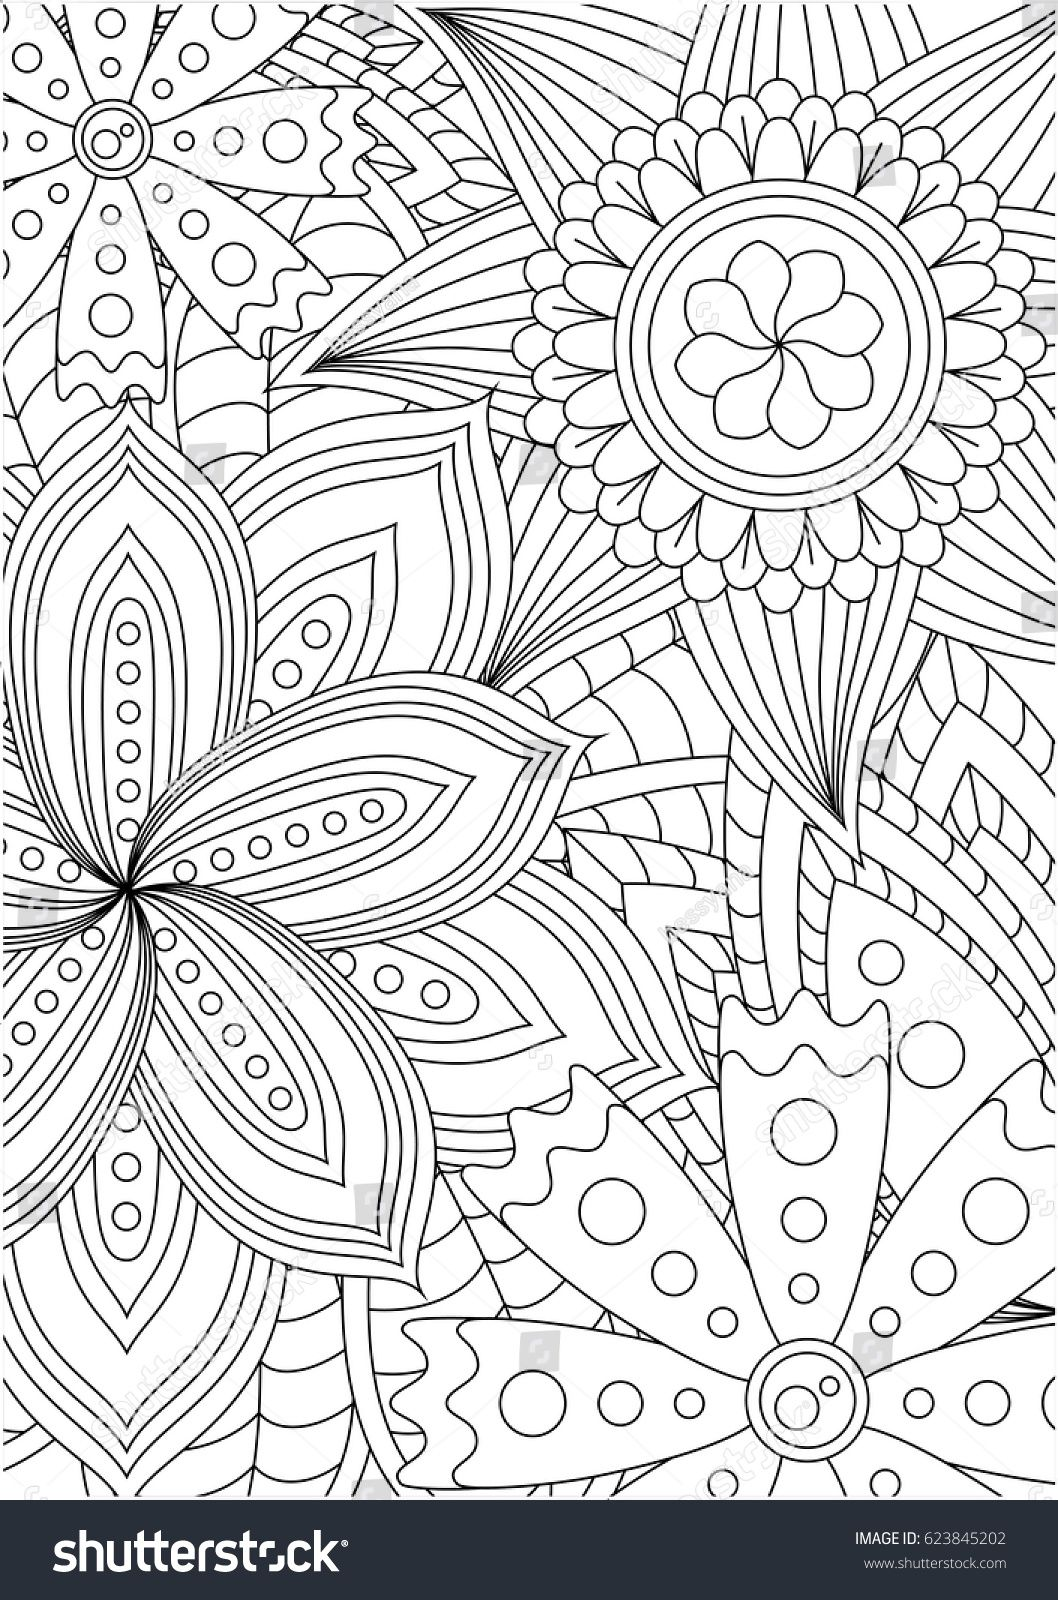 Hand Drawn Decorated Image With Doodle Flowers And Mandalas In Zen Style